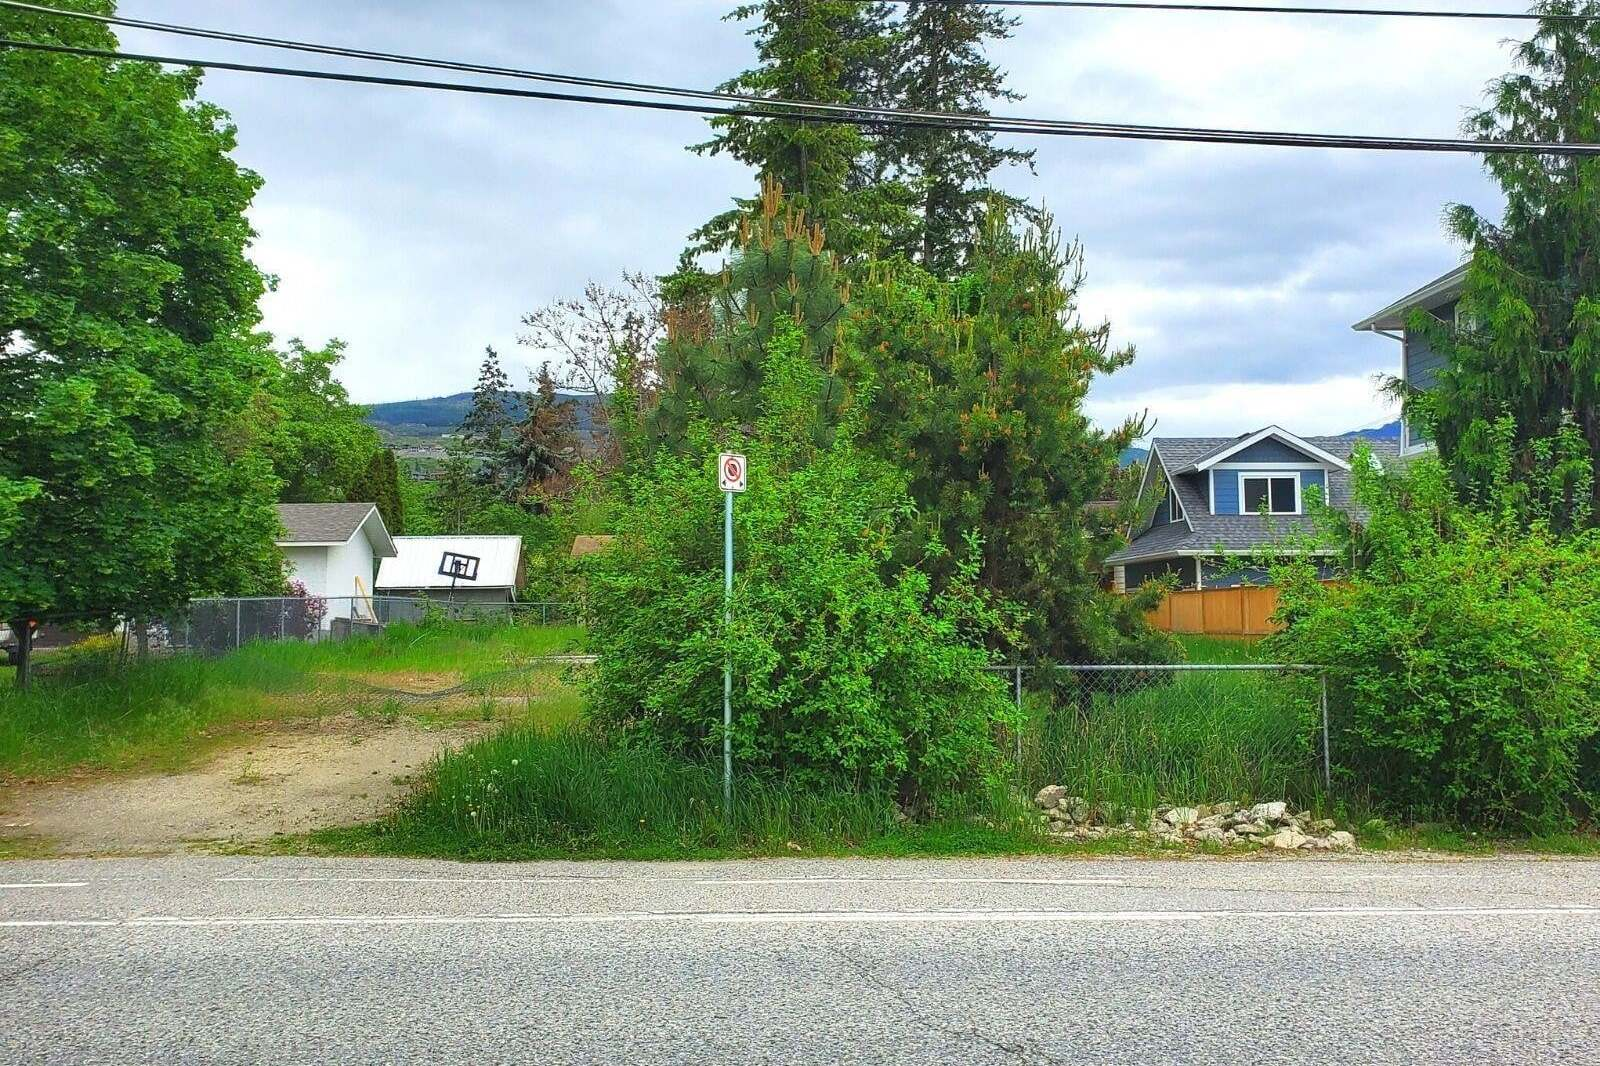 Residential property for sale at 705 Raymer Rd Kelowna British Columbia - MLS: 10206837